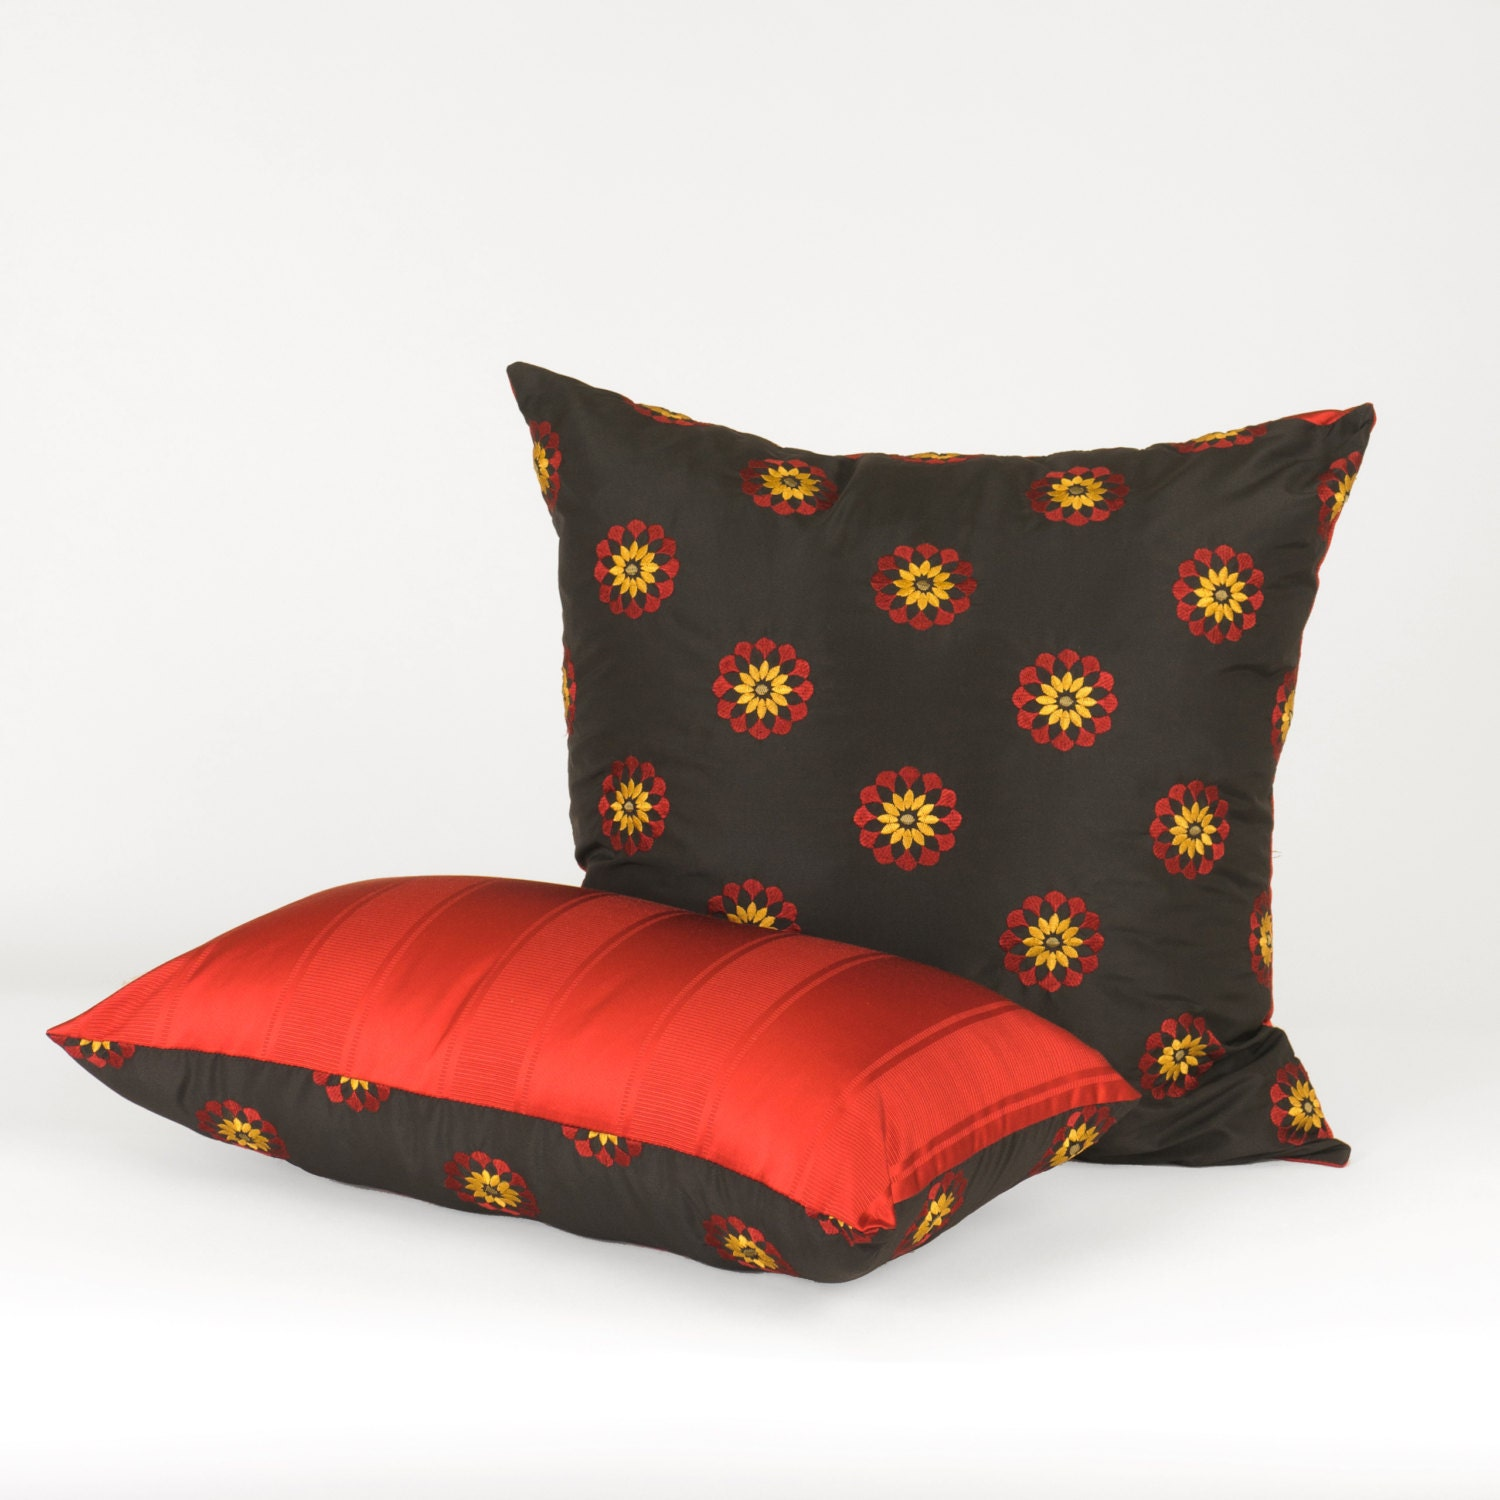 Black Throw Pillows For Sofa : Rectangle Throw Pillow for a Sofa or Bedroom Black Red